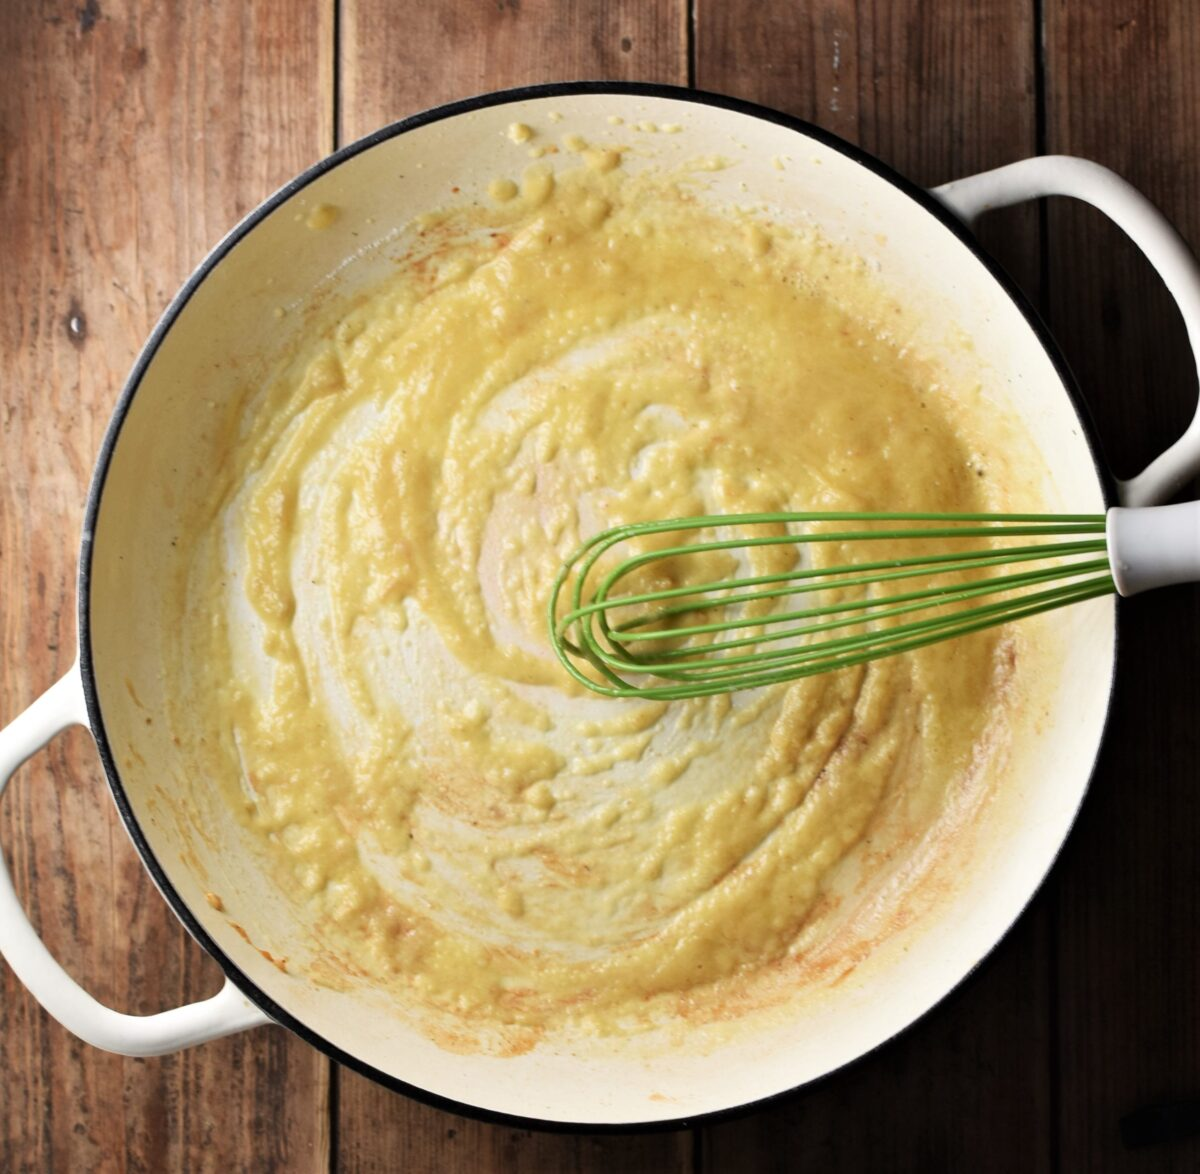 Top down view of roux in large shallow white pan with green whisk.